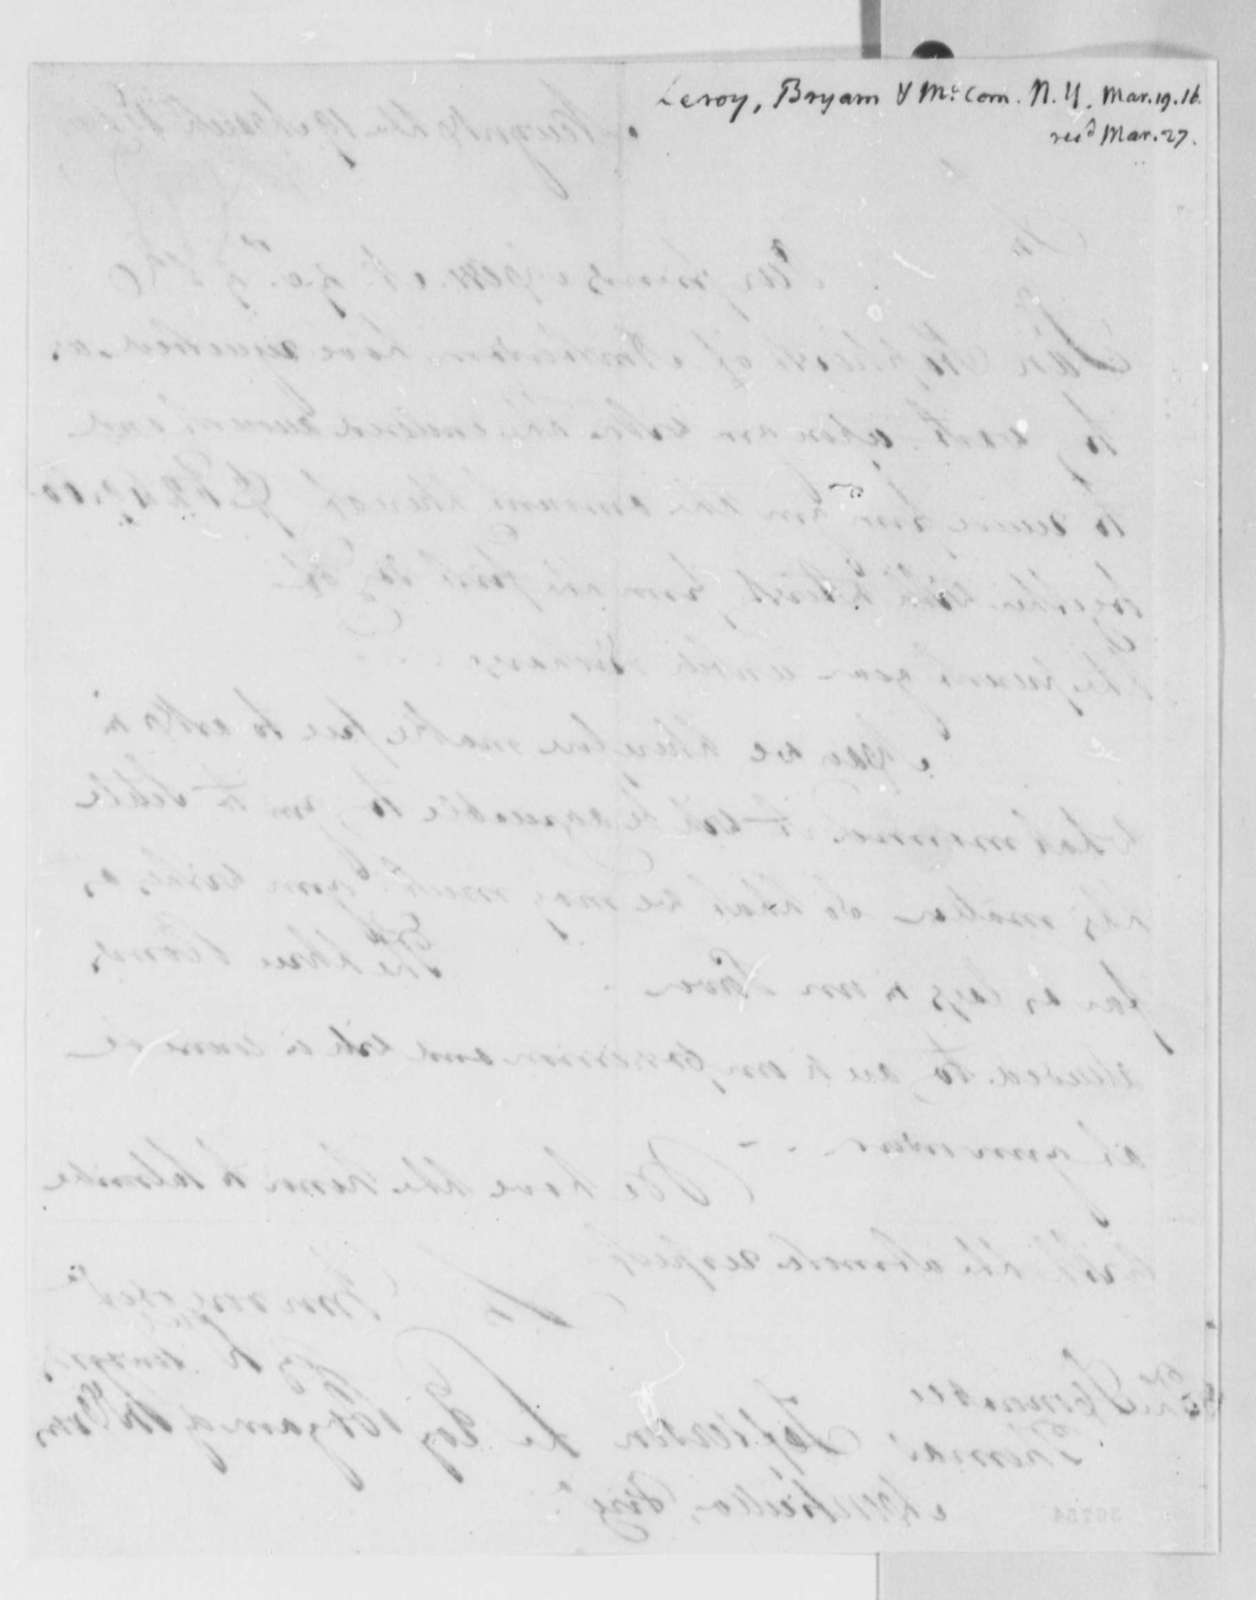 Leroy-Bayard & McCorn to Thomas Jefferson, March 19, 1816, with Copy